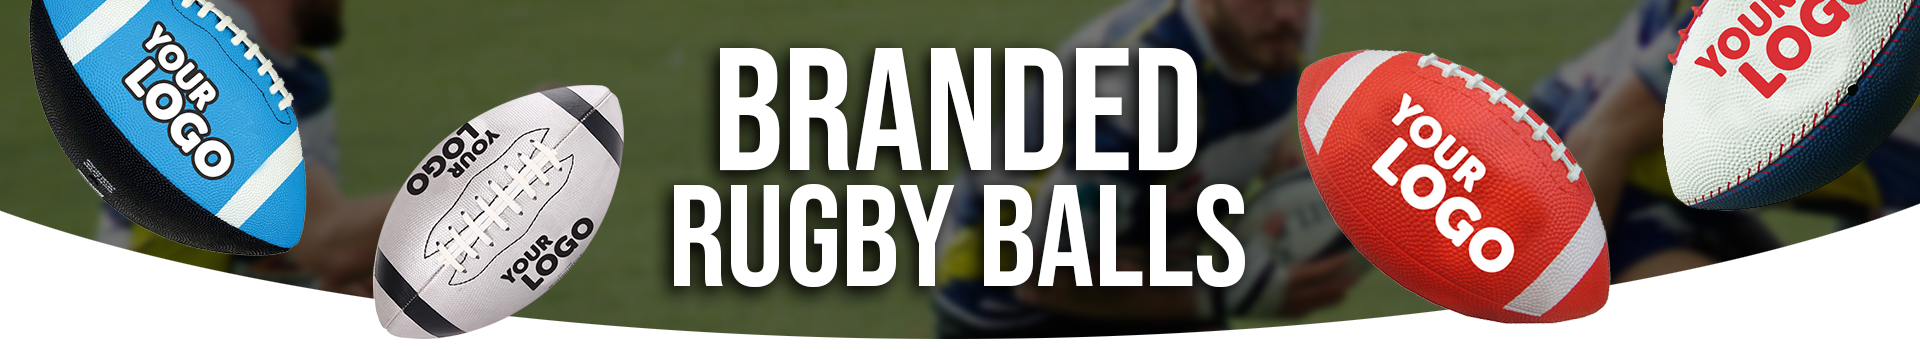 Branded-Rugby-Header.png